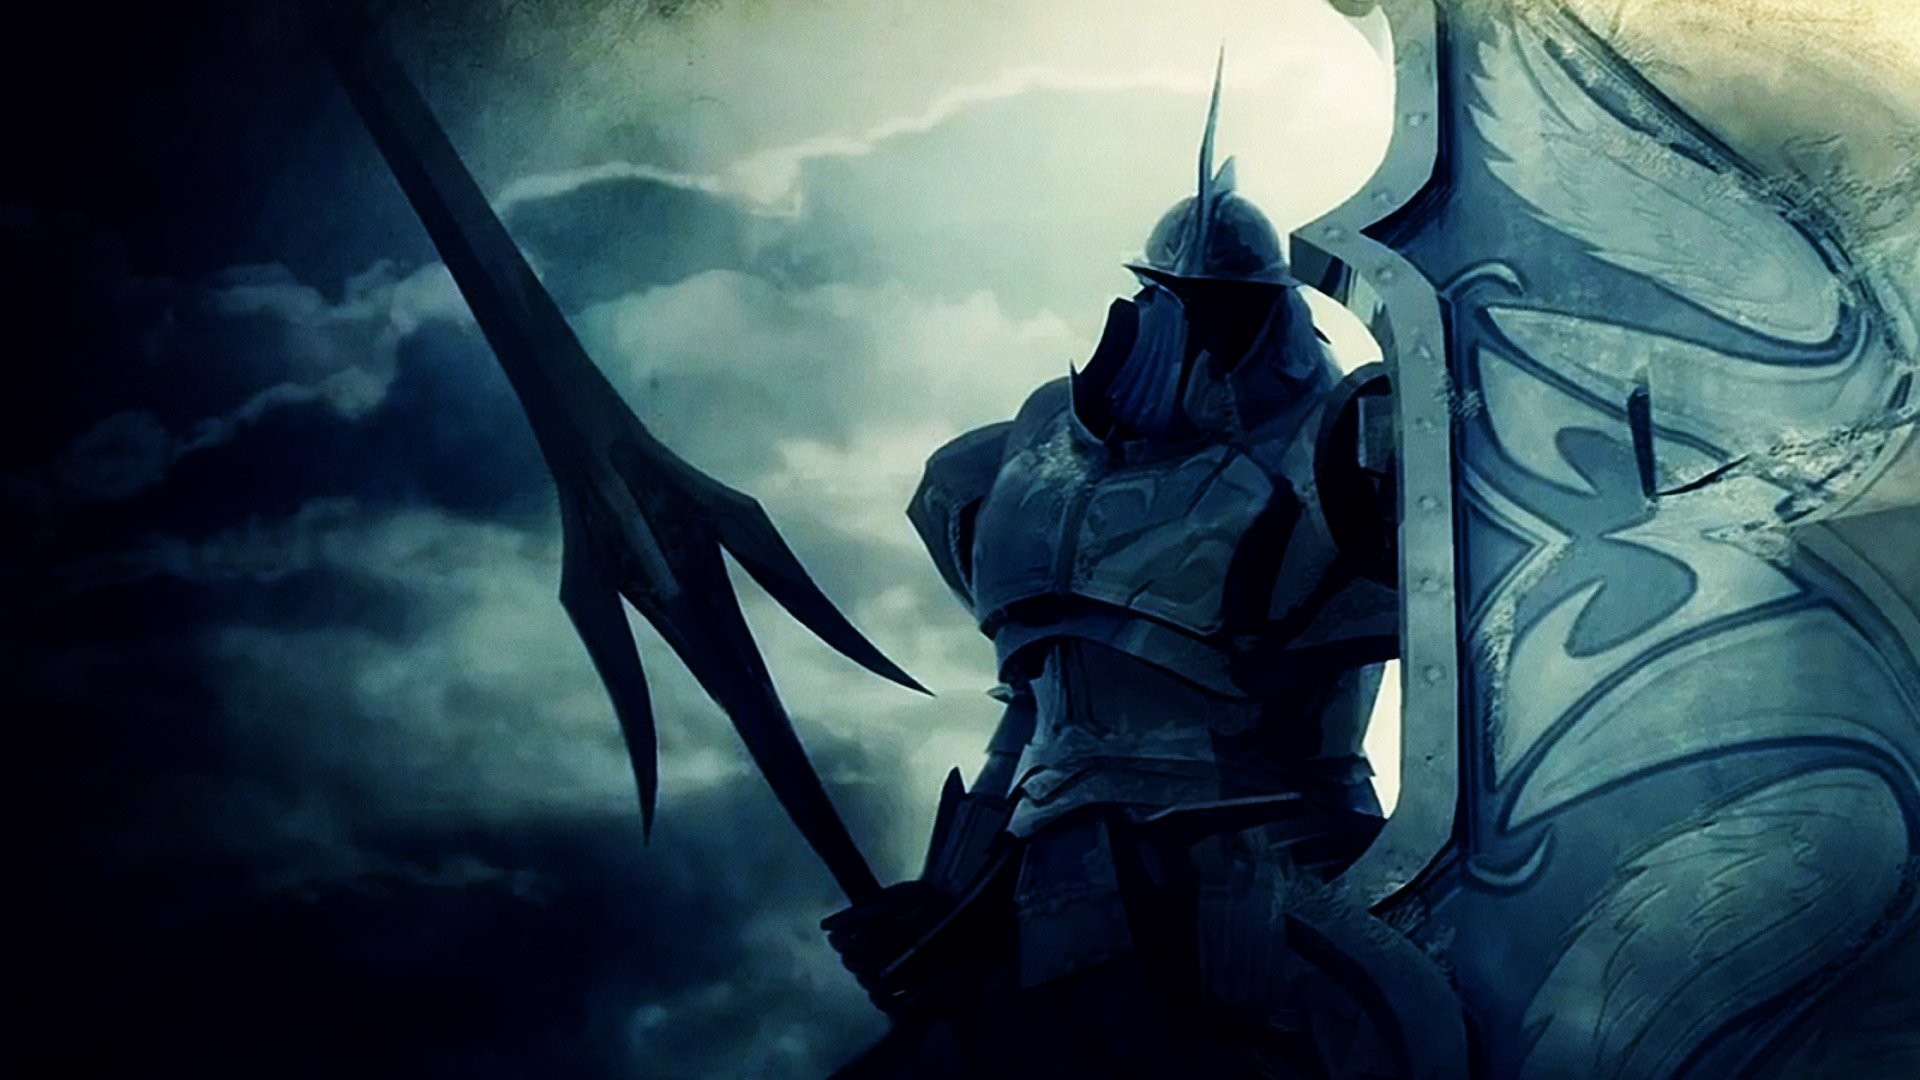 Res: 1920x1080, DEMONS SOULS Demonzu Souru fantasy action rpg dark action fighting demon  artwork 1dsouls demonssouls evil magic knight warrior wallpaper |   ...